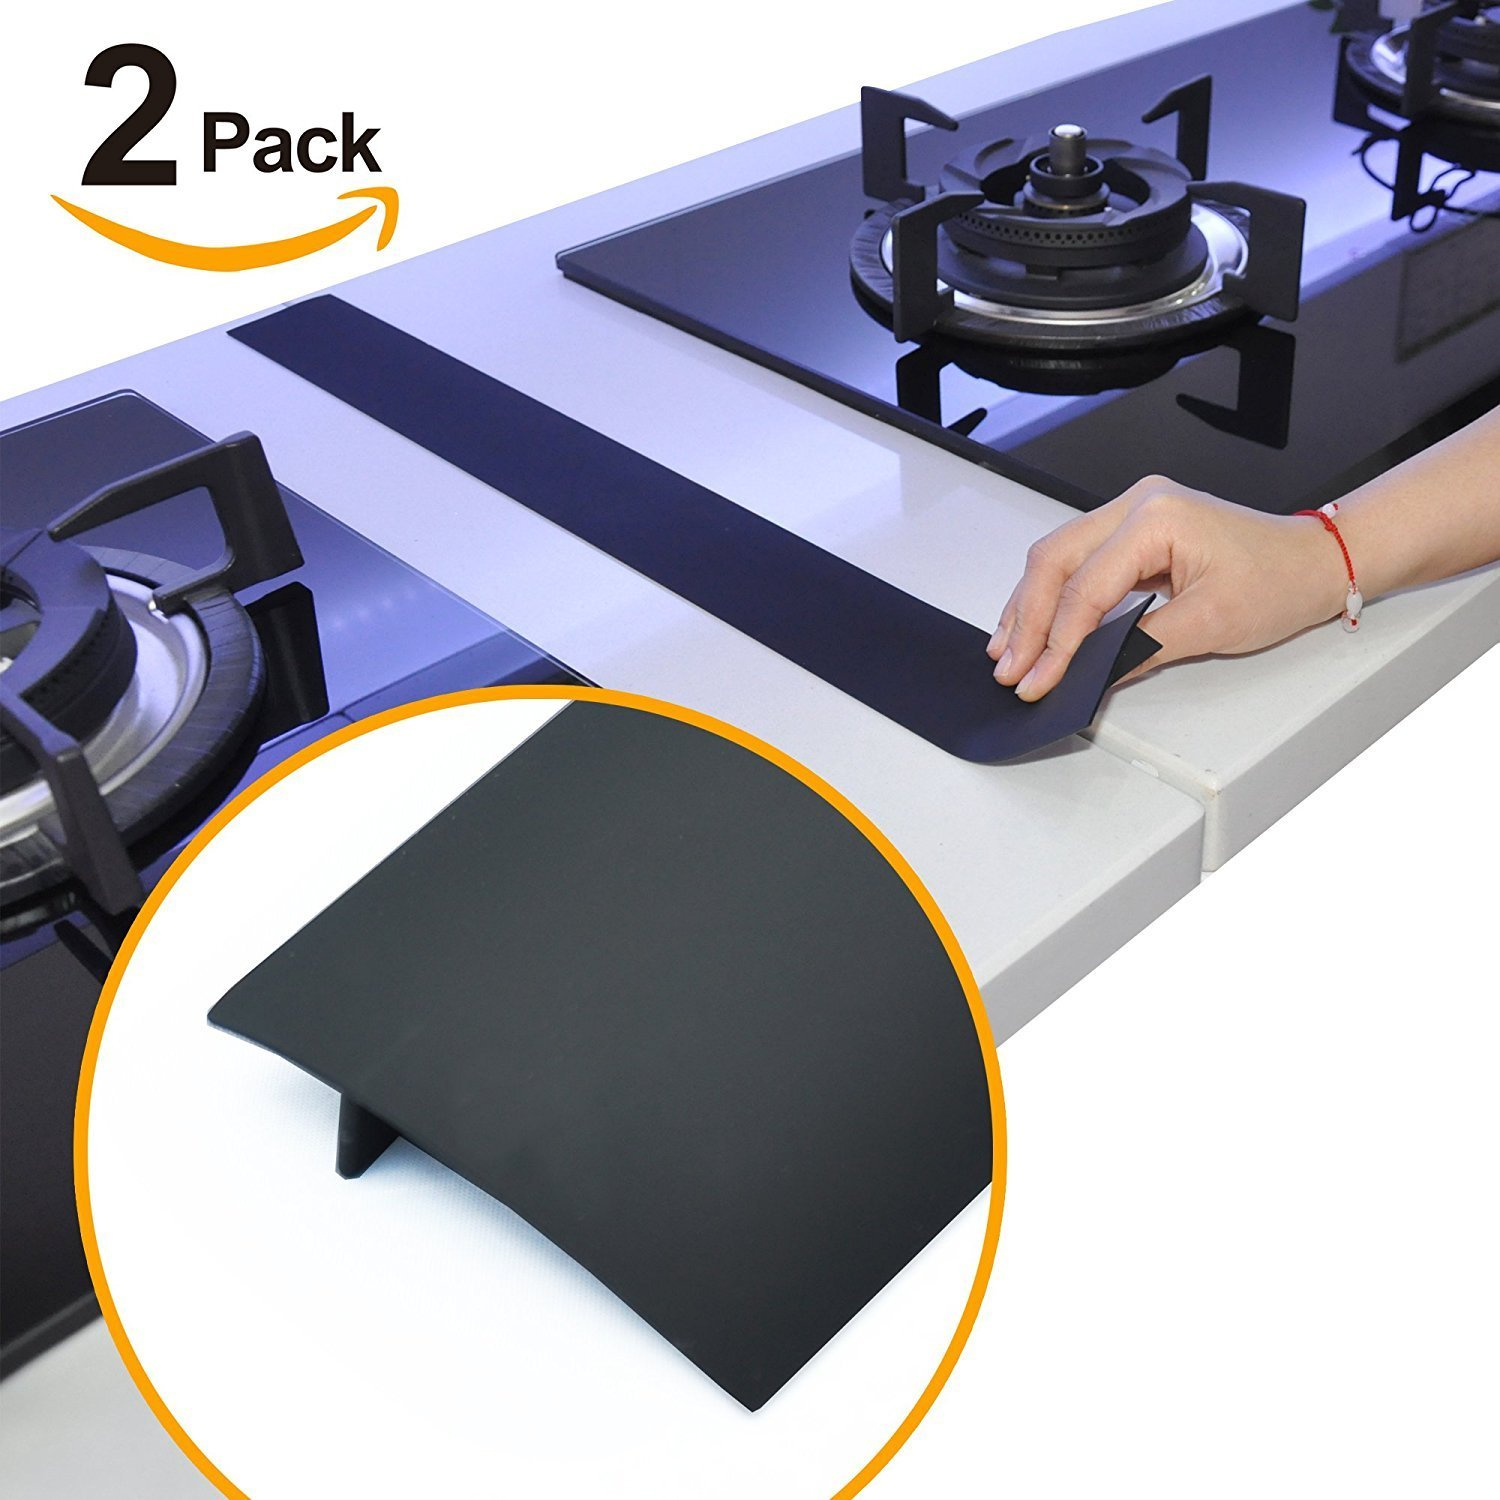 Kindga Silicone Stove Counter Gap Cover Kitchen Counter Gap Filler by 25'' Long Gap Filler Sealing Spills Between Kitchen Appliances Washing Machine and Stovetop, Set of 2(Black)